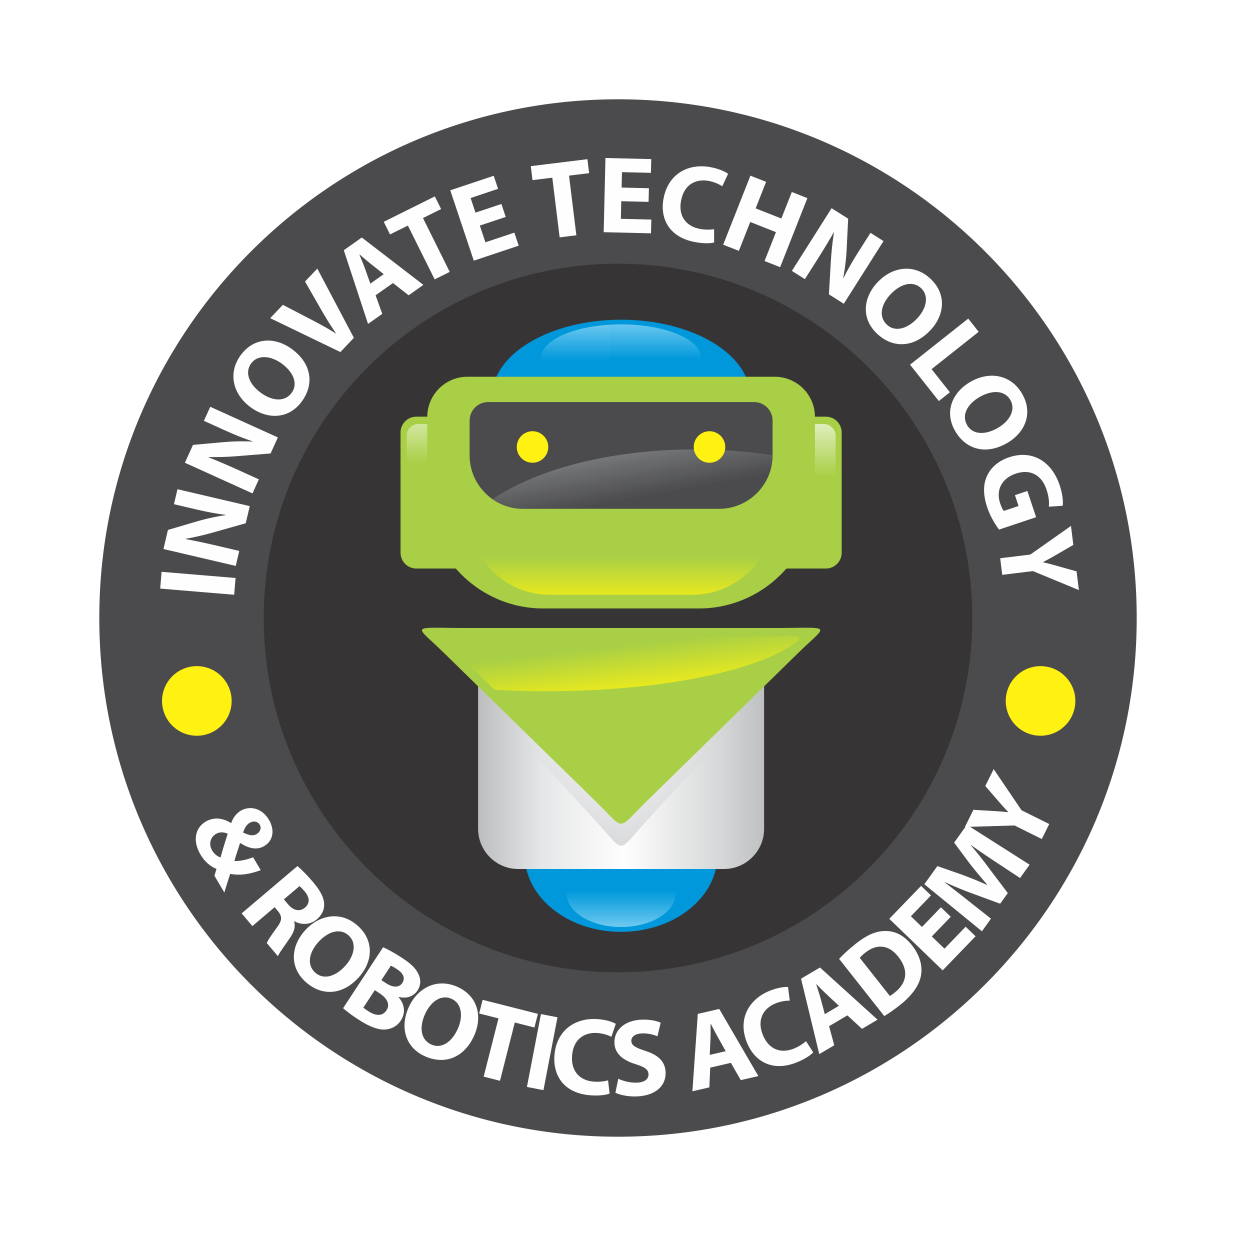 Innovate Technology & Robotics Academy Melbourne